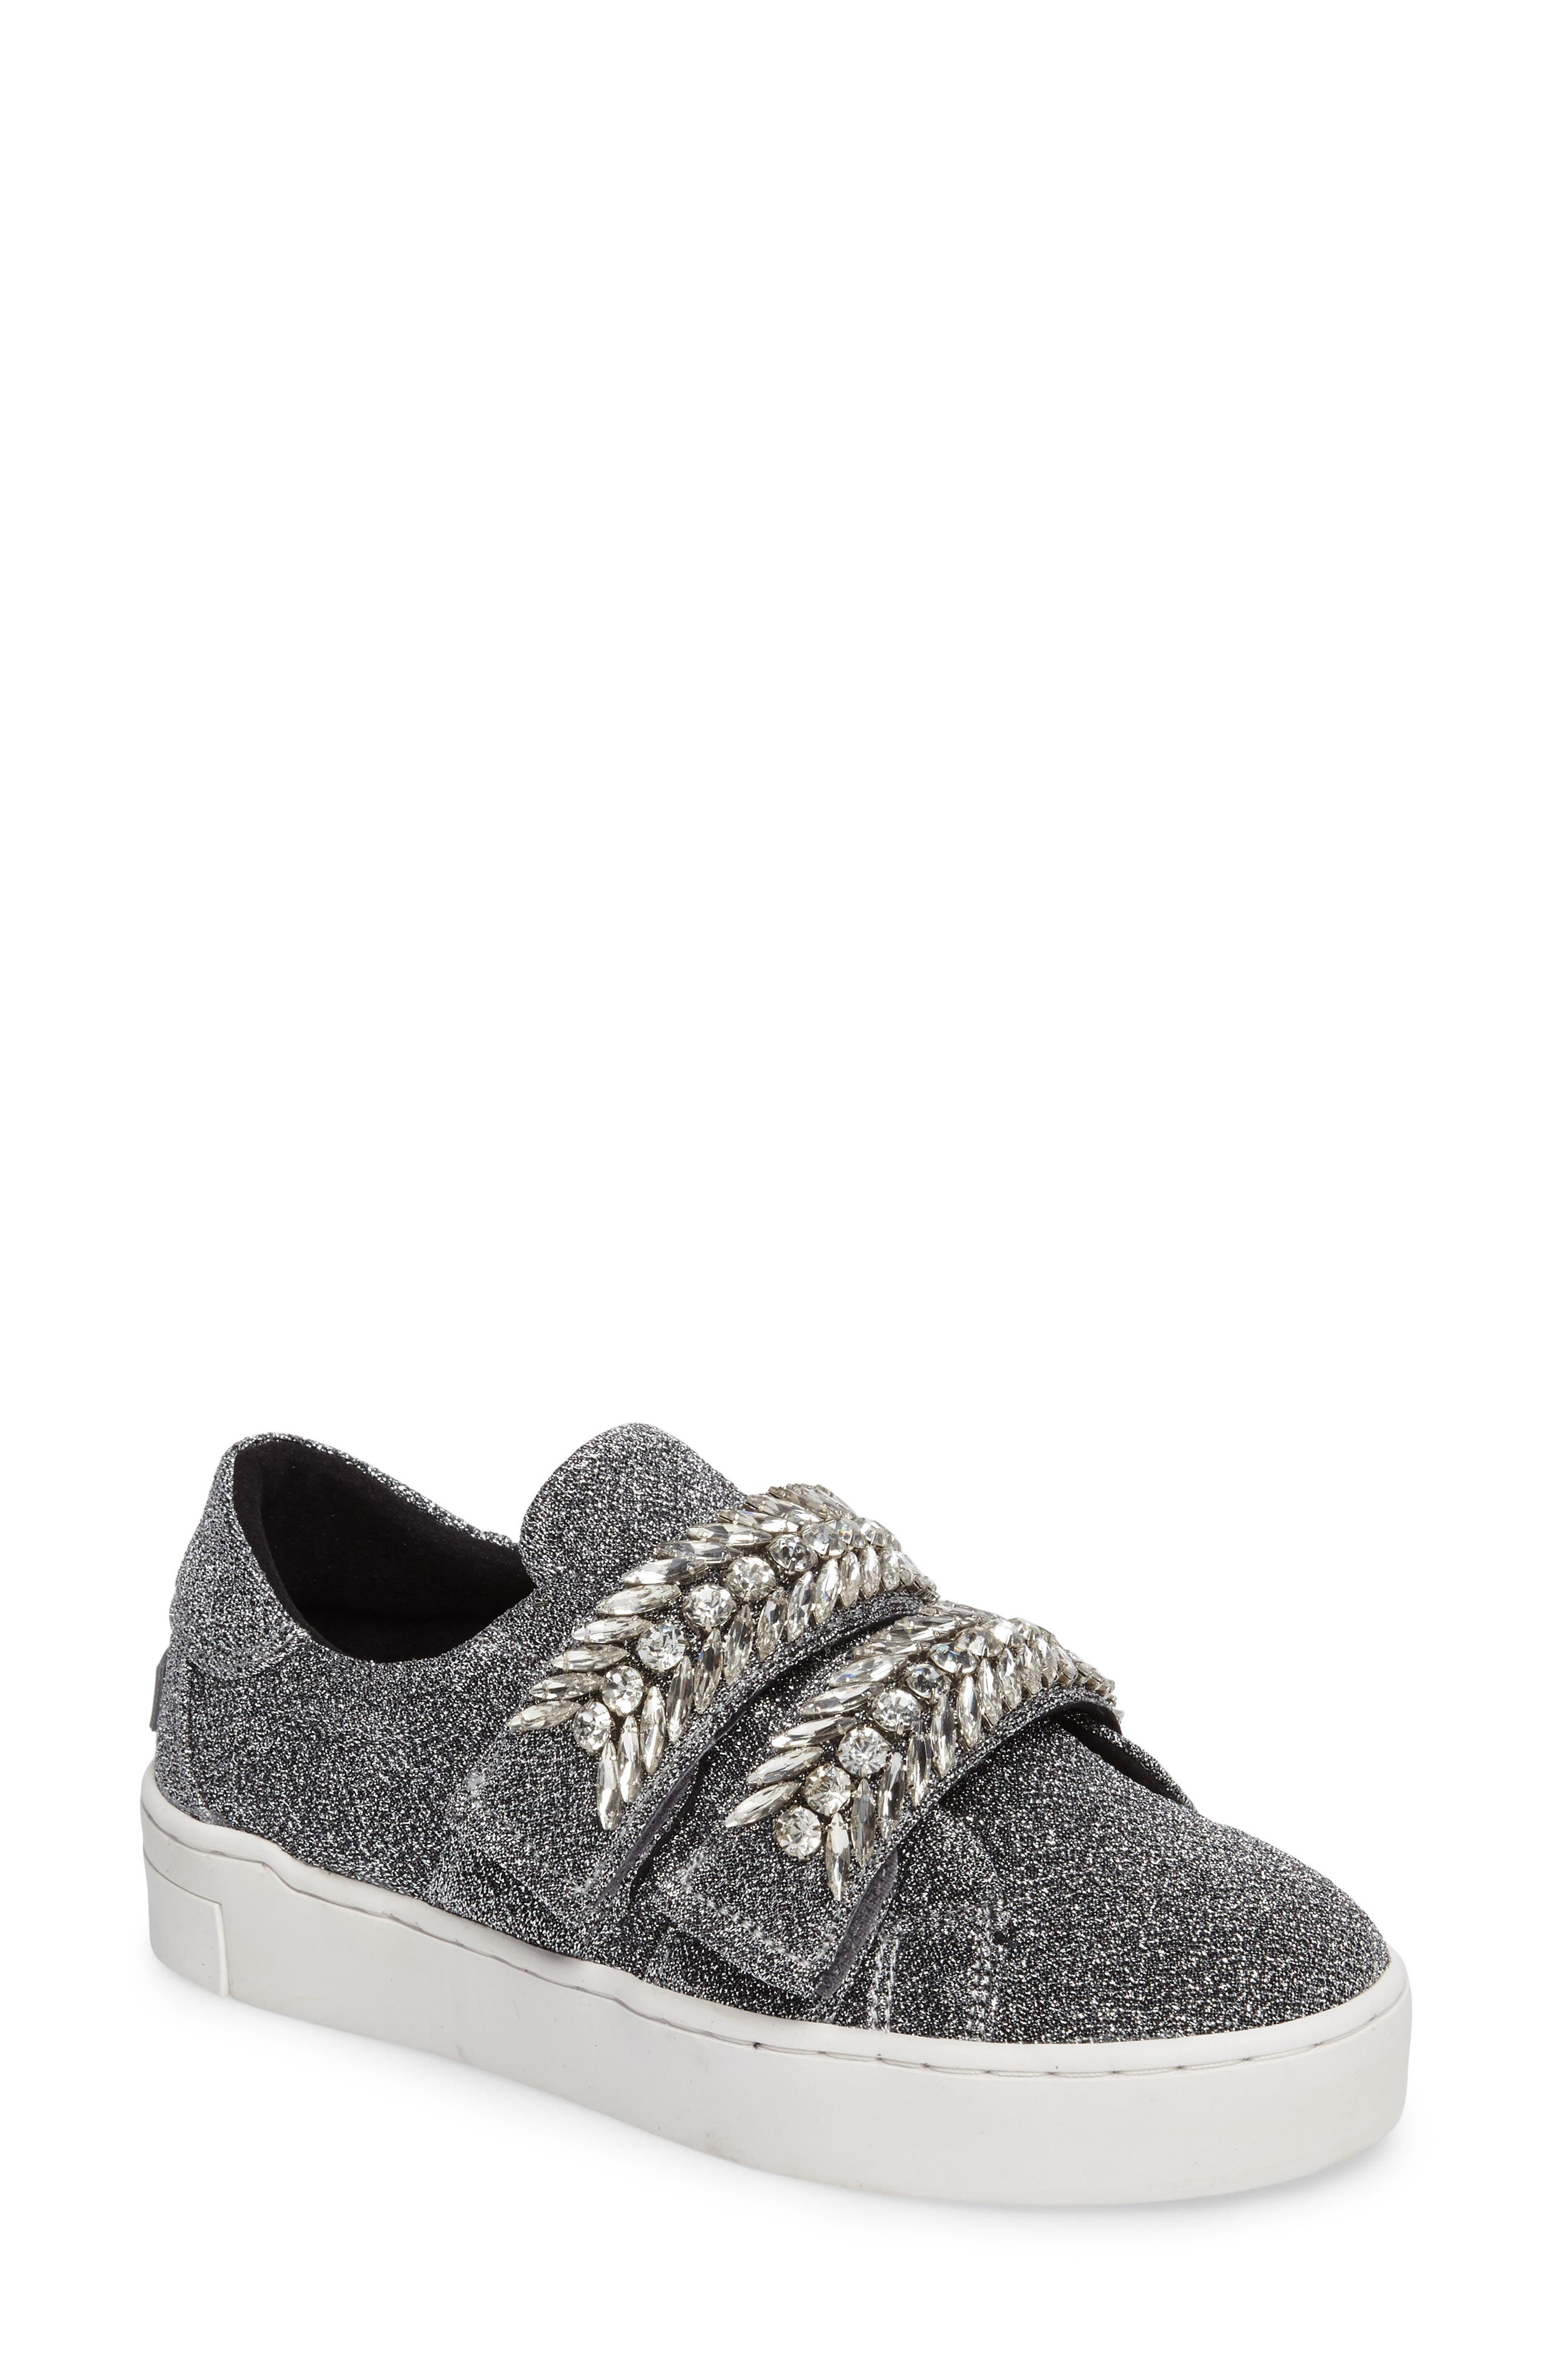 Crystal Embellished Sneaker,                             Main thumbnail 1, color,                             040